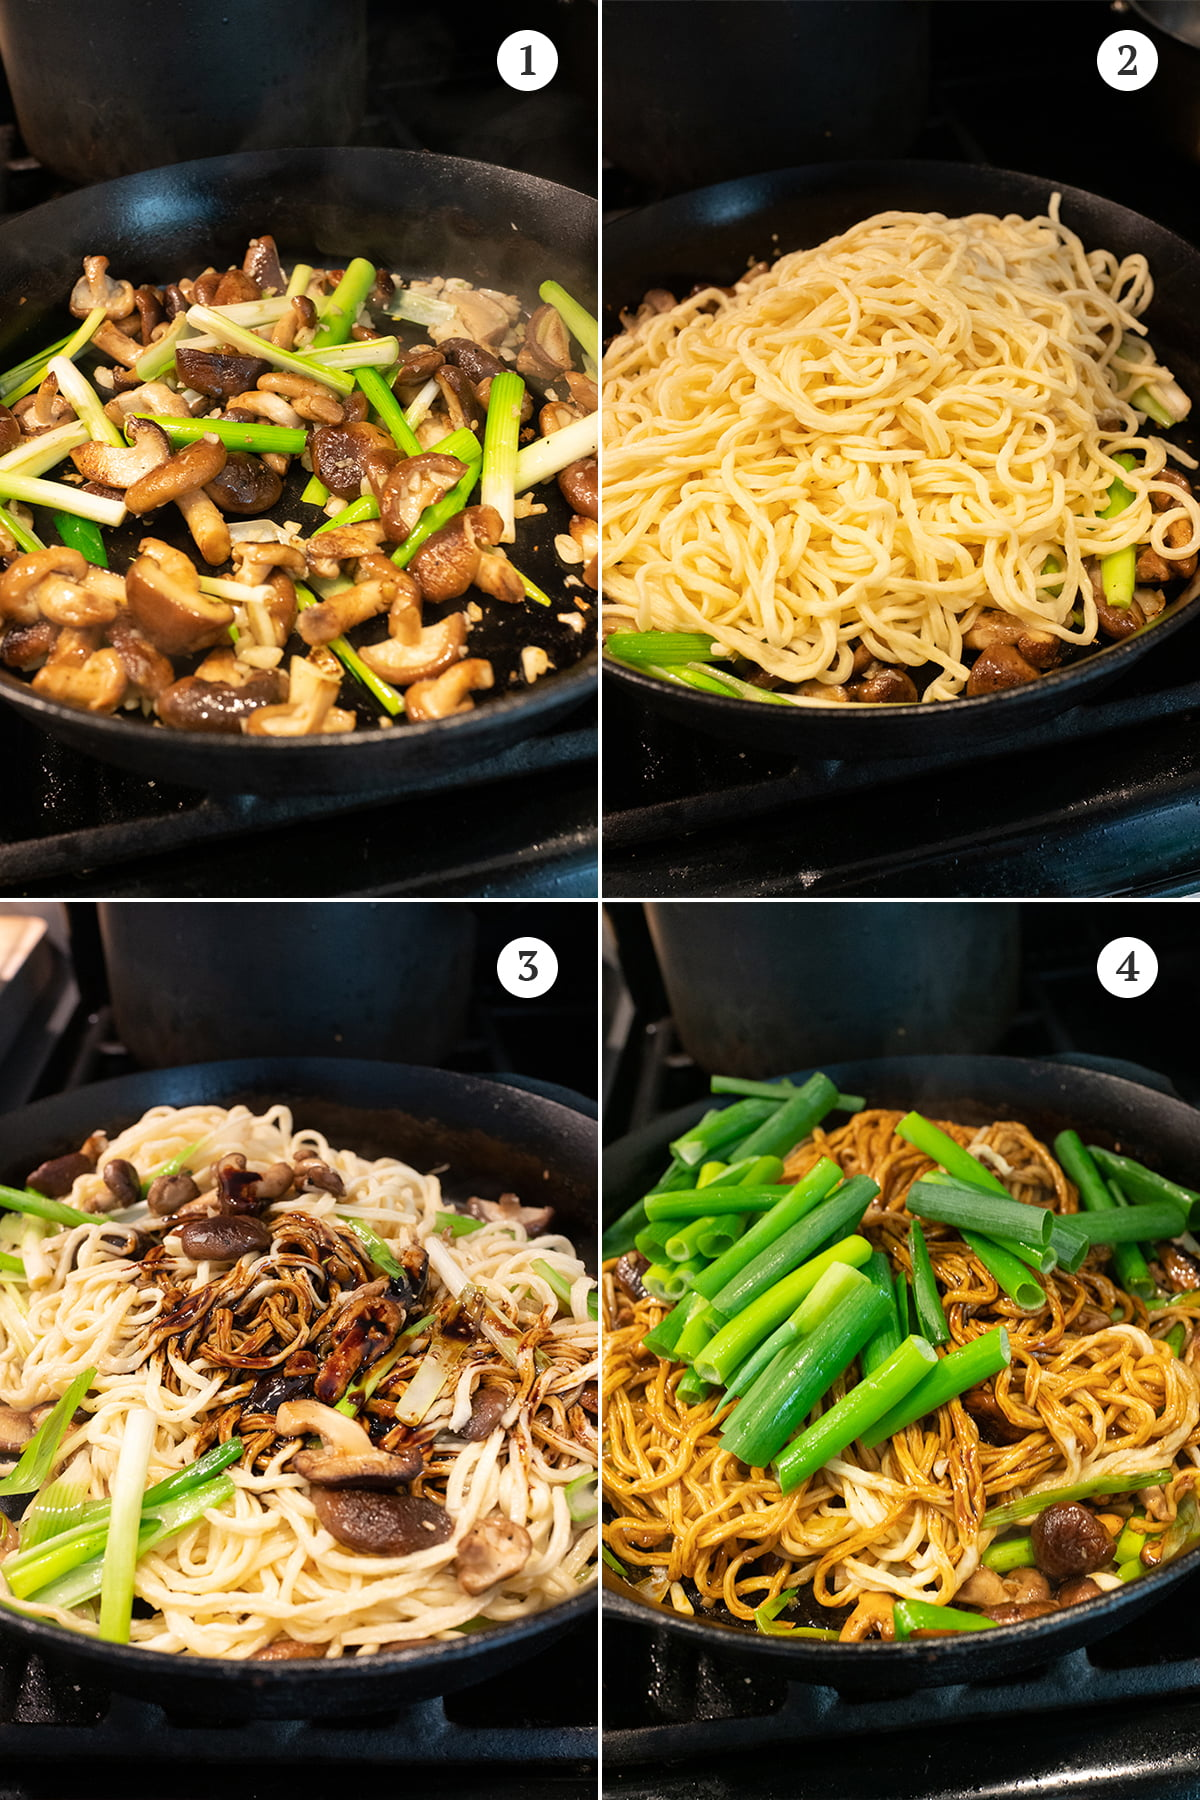 Collage of cooking steps for yi mein. 1 - sauté mushrooms, white part of green onions, and garlic. 2 - add the yi mein noodles (which should have been boiled and drained). 3 - pour in the sauce and toss. 4 - add the green parts of the green onions, toss until evenly mixed.